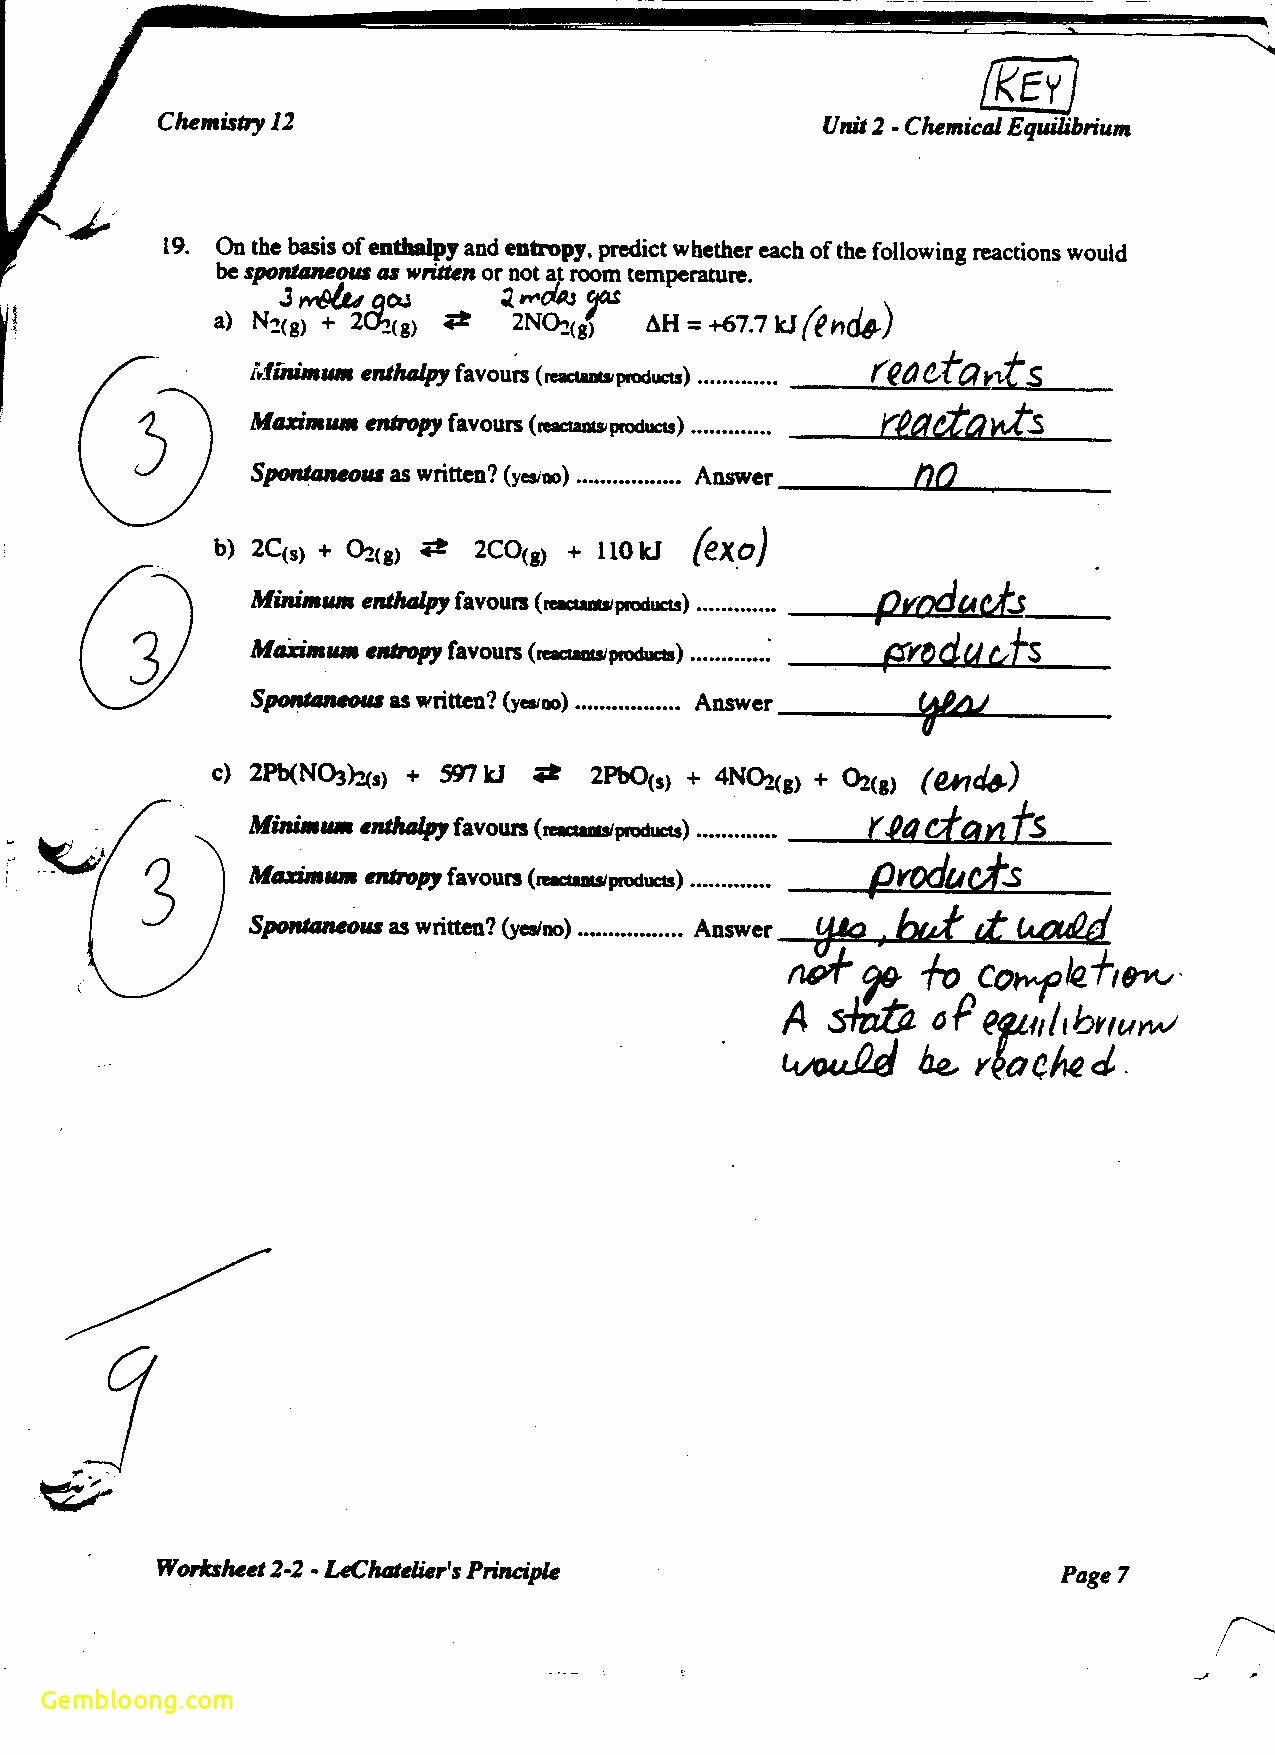 Constitutional Principles Worksheet Answers Awesome Constitutional Principles Worksheet Cramerforcongress